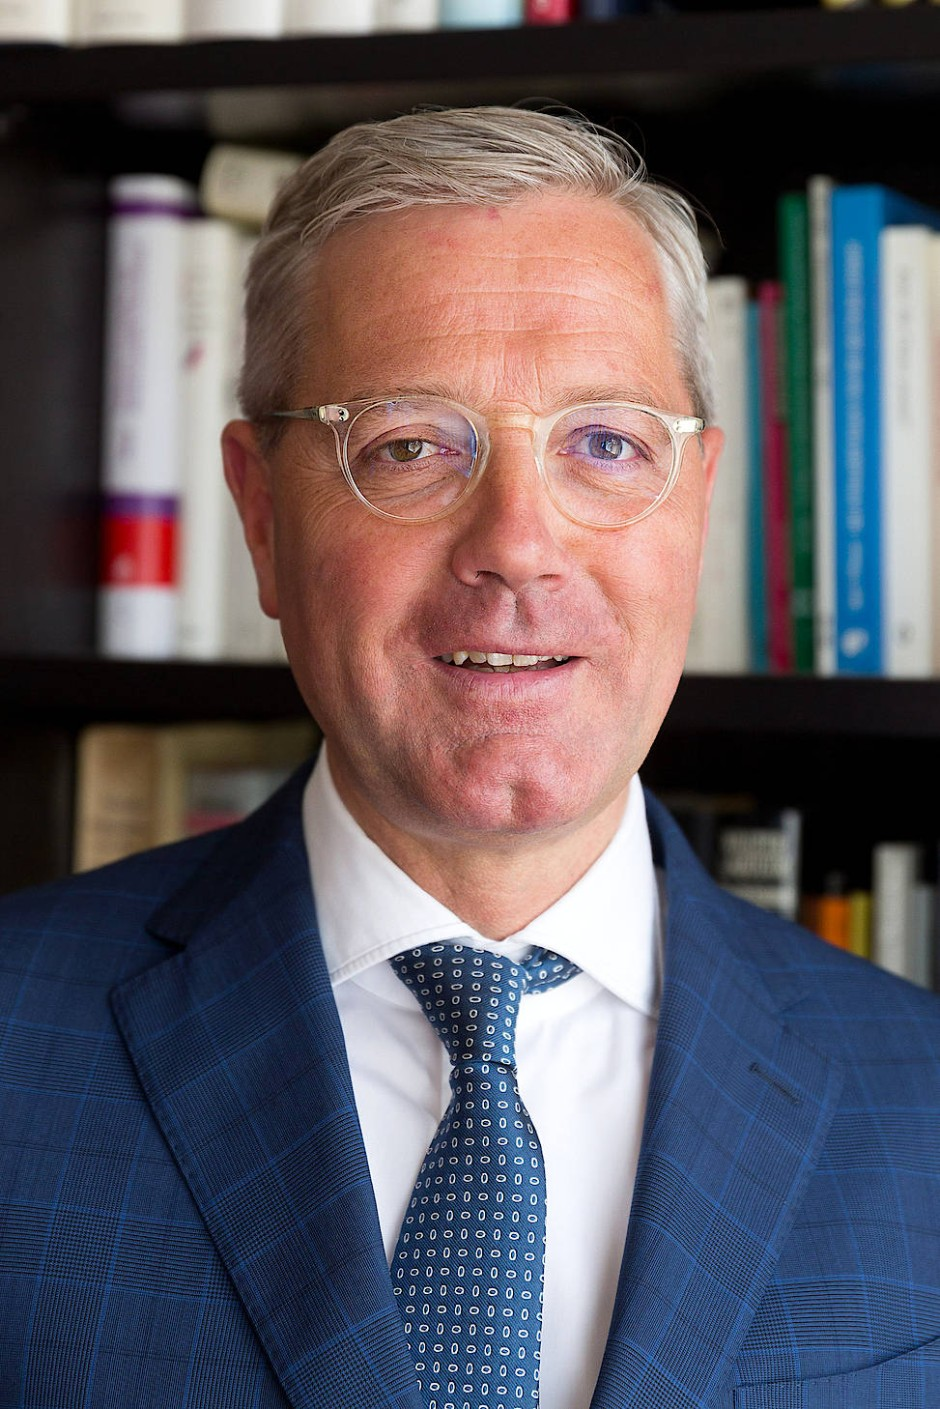 Norbert Roettgen (CDU) thinks, that the chinese model of protectionism would weaken Europe.